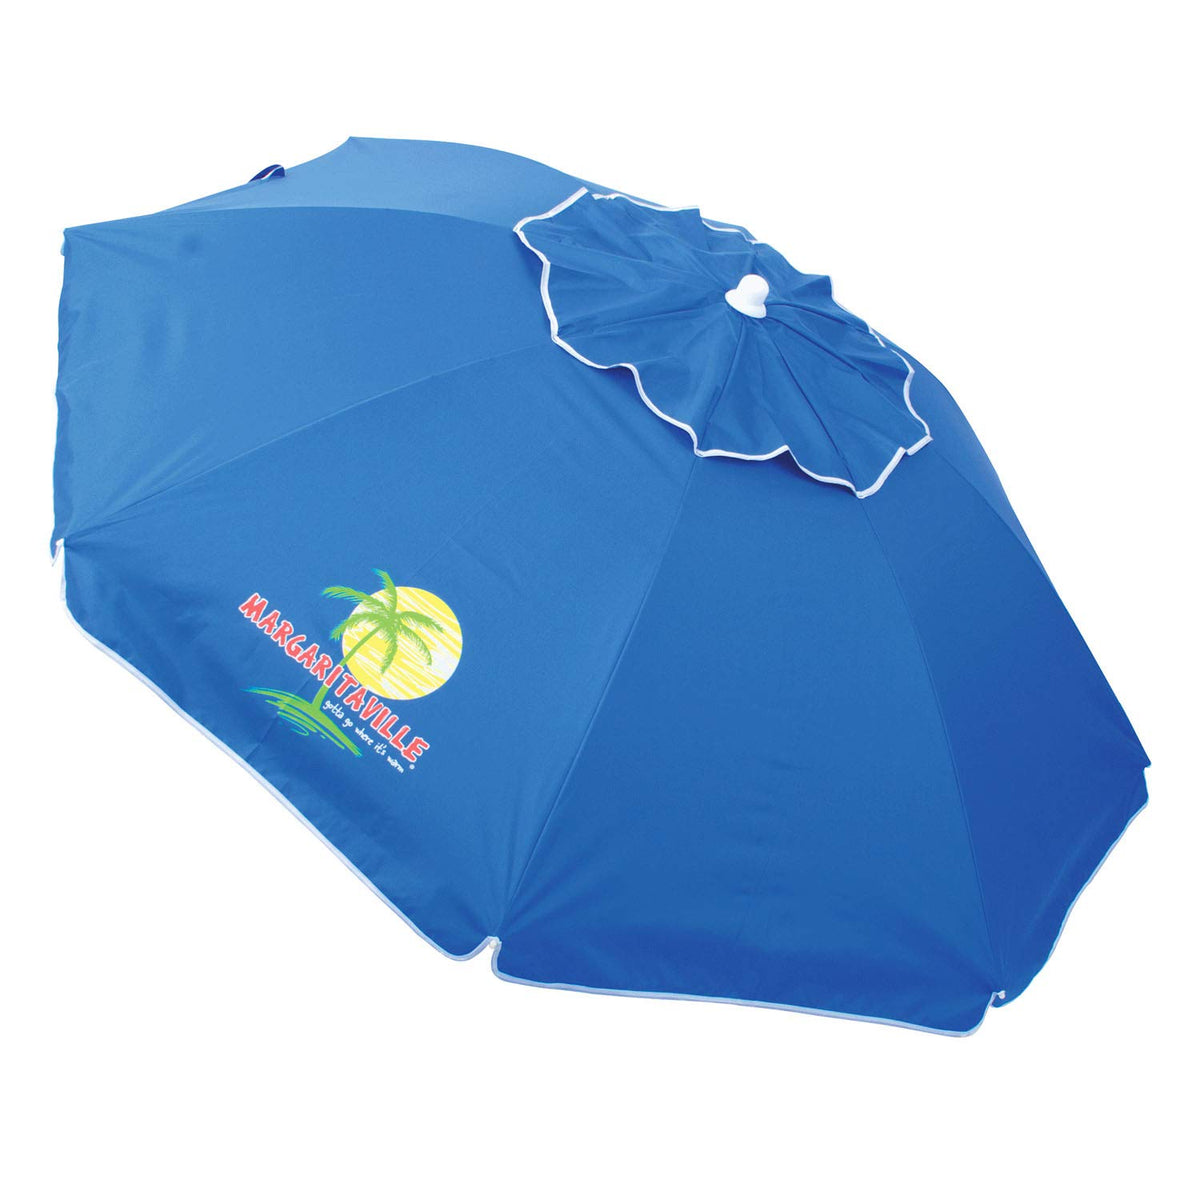 Margaritaville WUB76MV-179-1 6.5 ft UPF 50 Plus Sun Protection Tilt Umbrella- Anchor